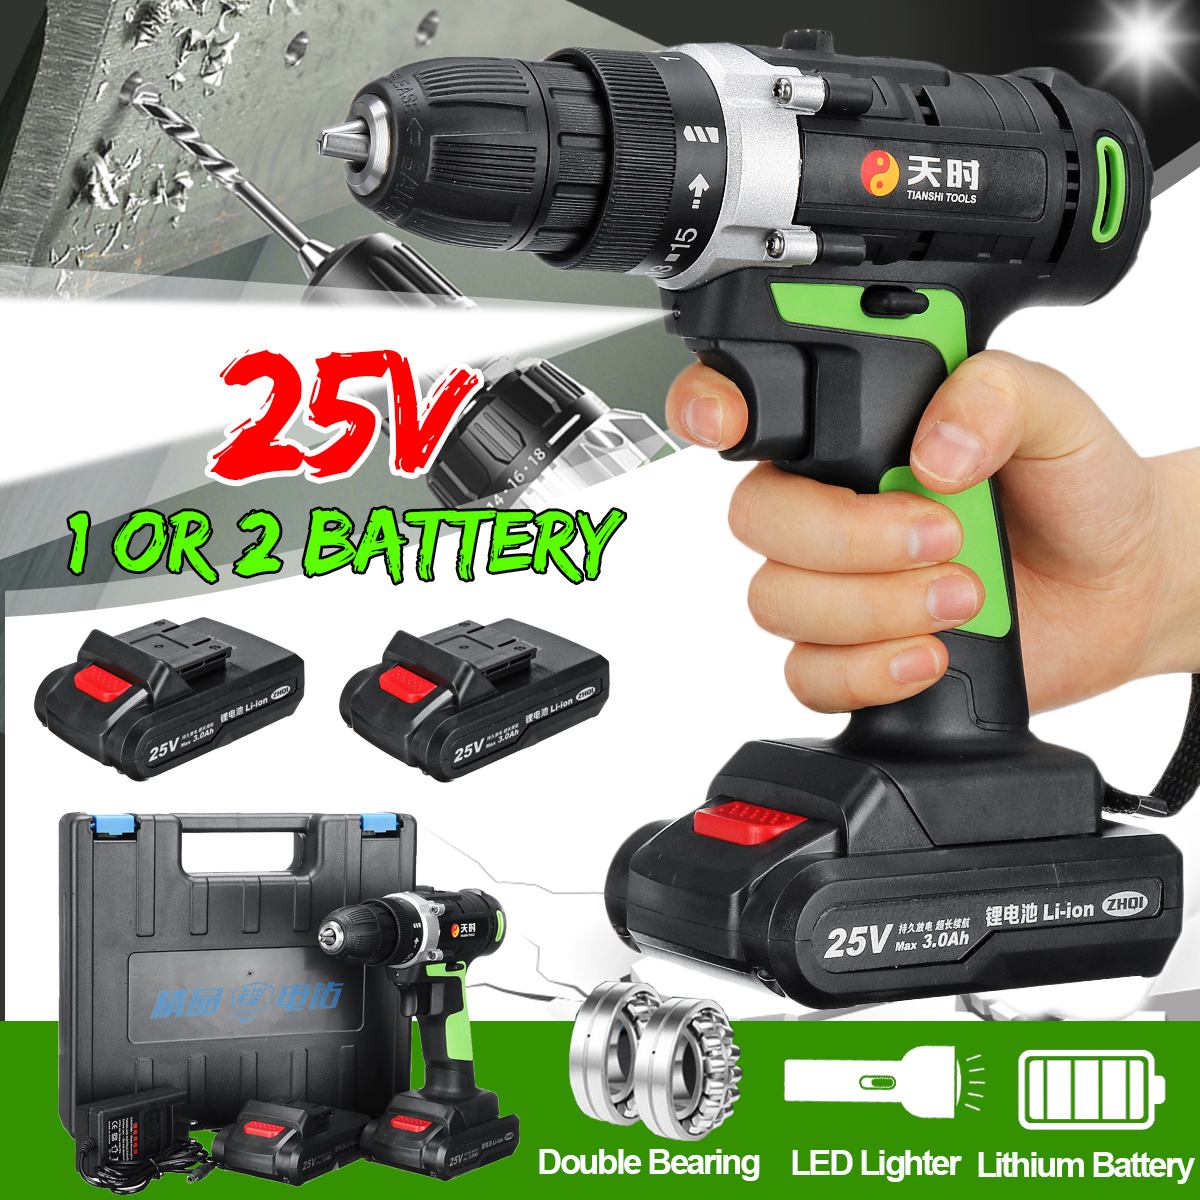 25V Rechargeable lithium battery electric screwdriver hand electric drill bits suitcase power tool lithium-ion power tools25V Rechargeable lithium battery electric screwdriver hand electric drill bits suitcase power tool lithium-ion power tools